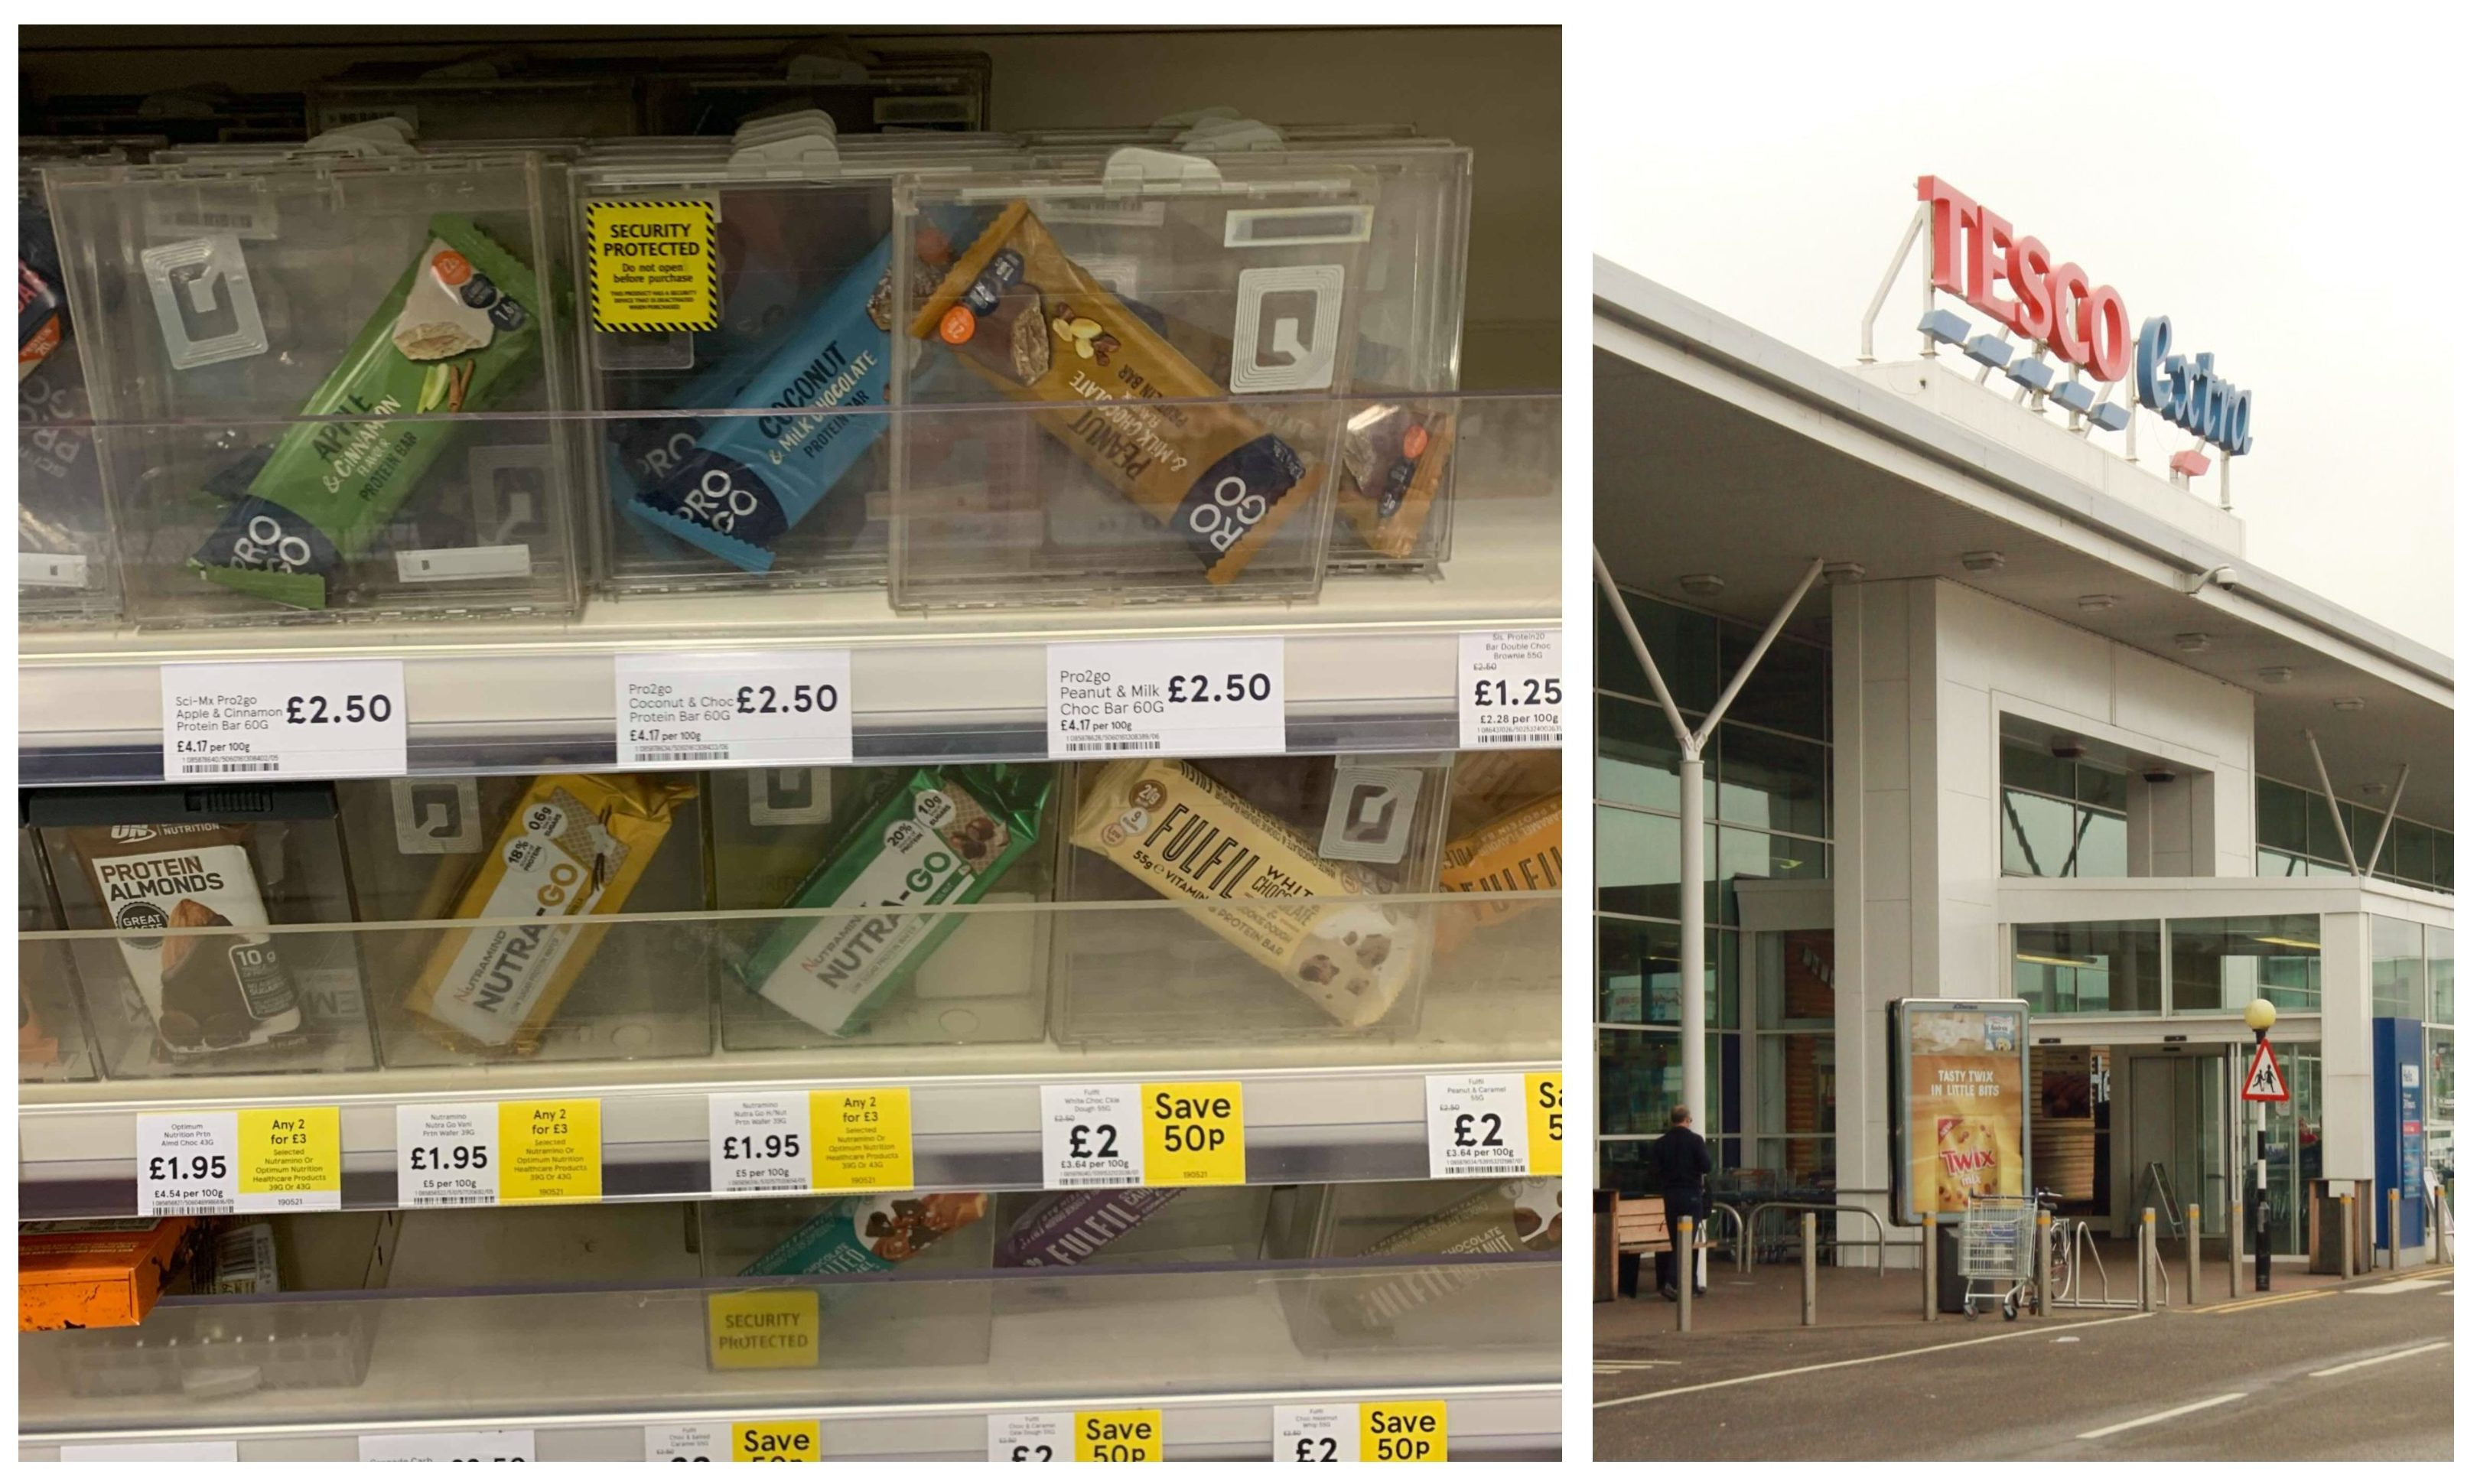 The individually boxed protein bars are on sale in the Kingsway Tesco.